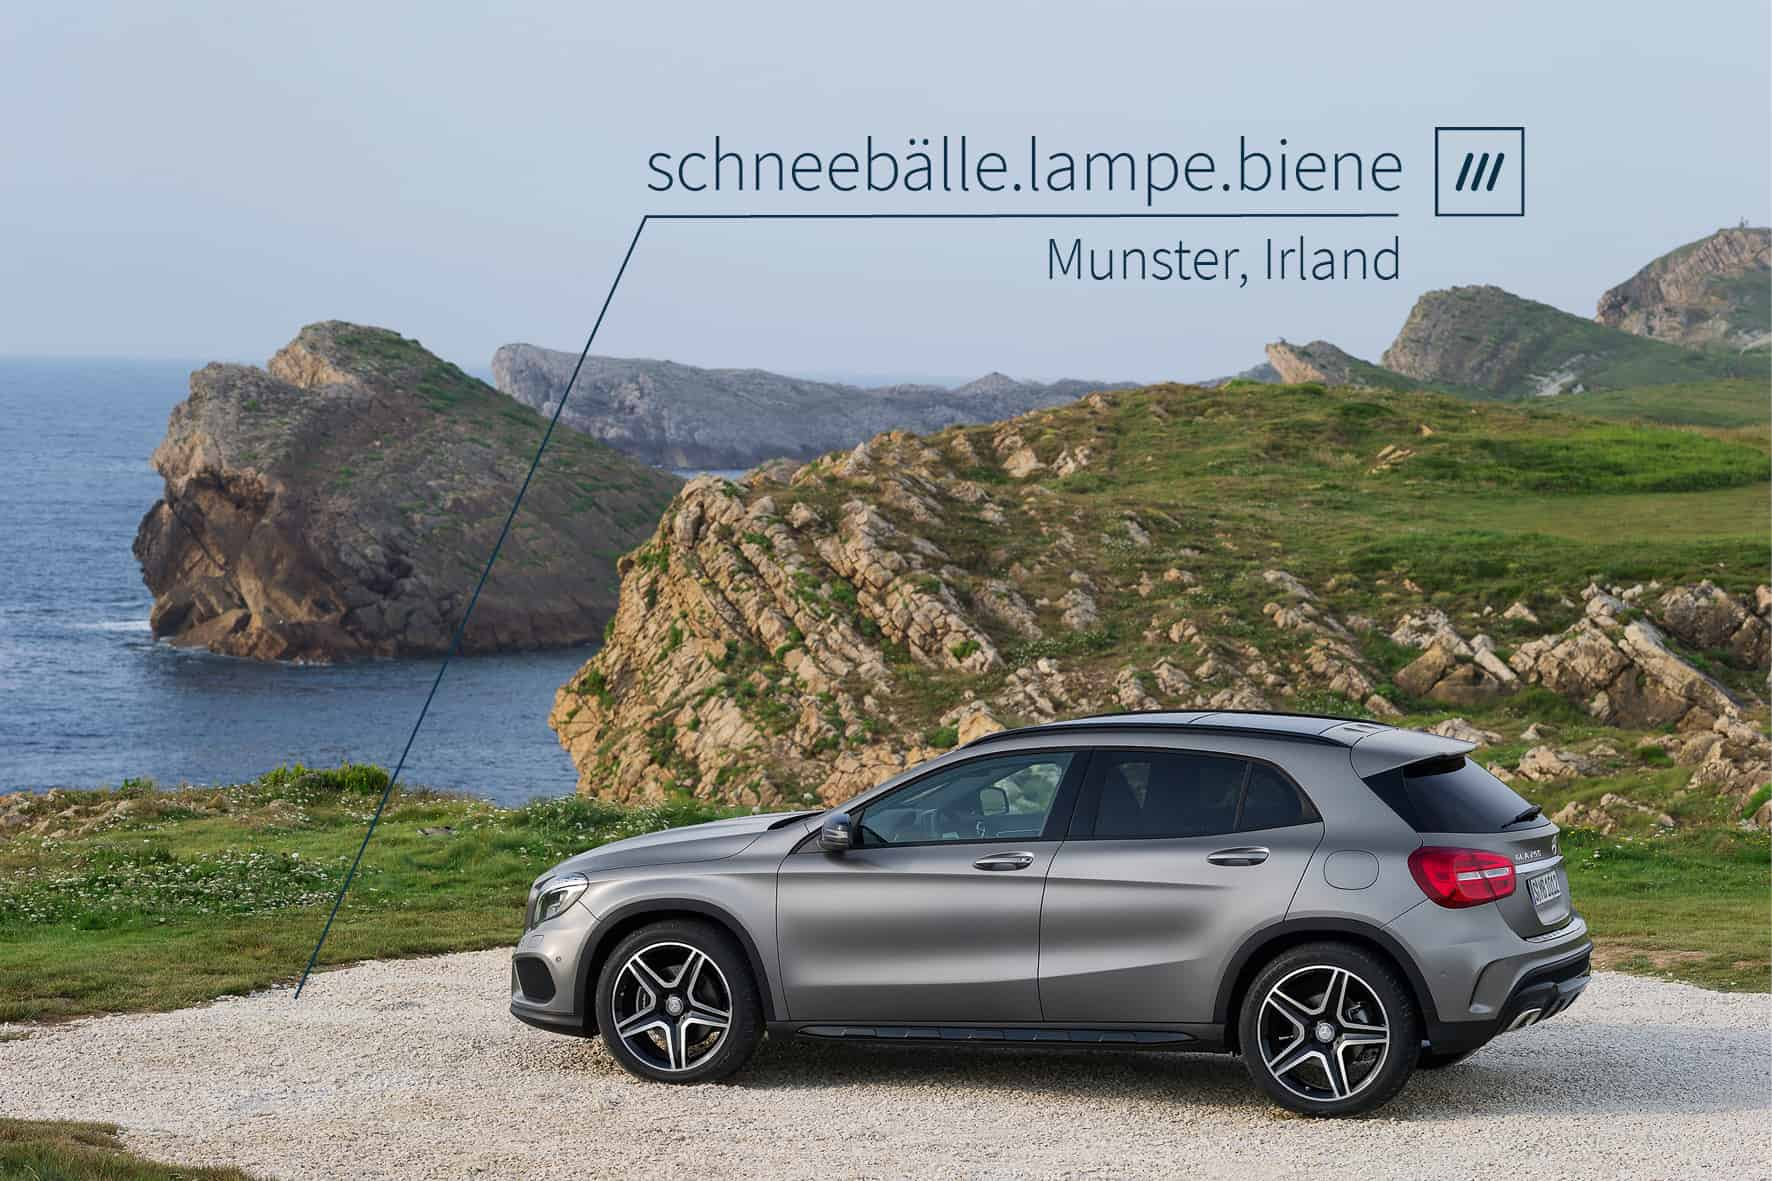 Das global erfolgreiche Mobility Startup what3words